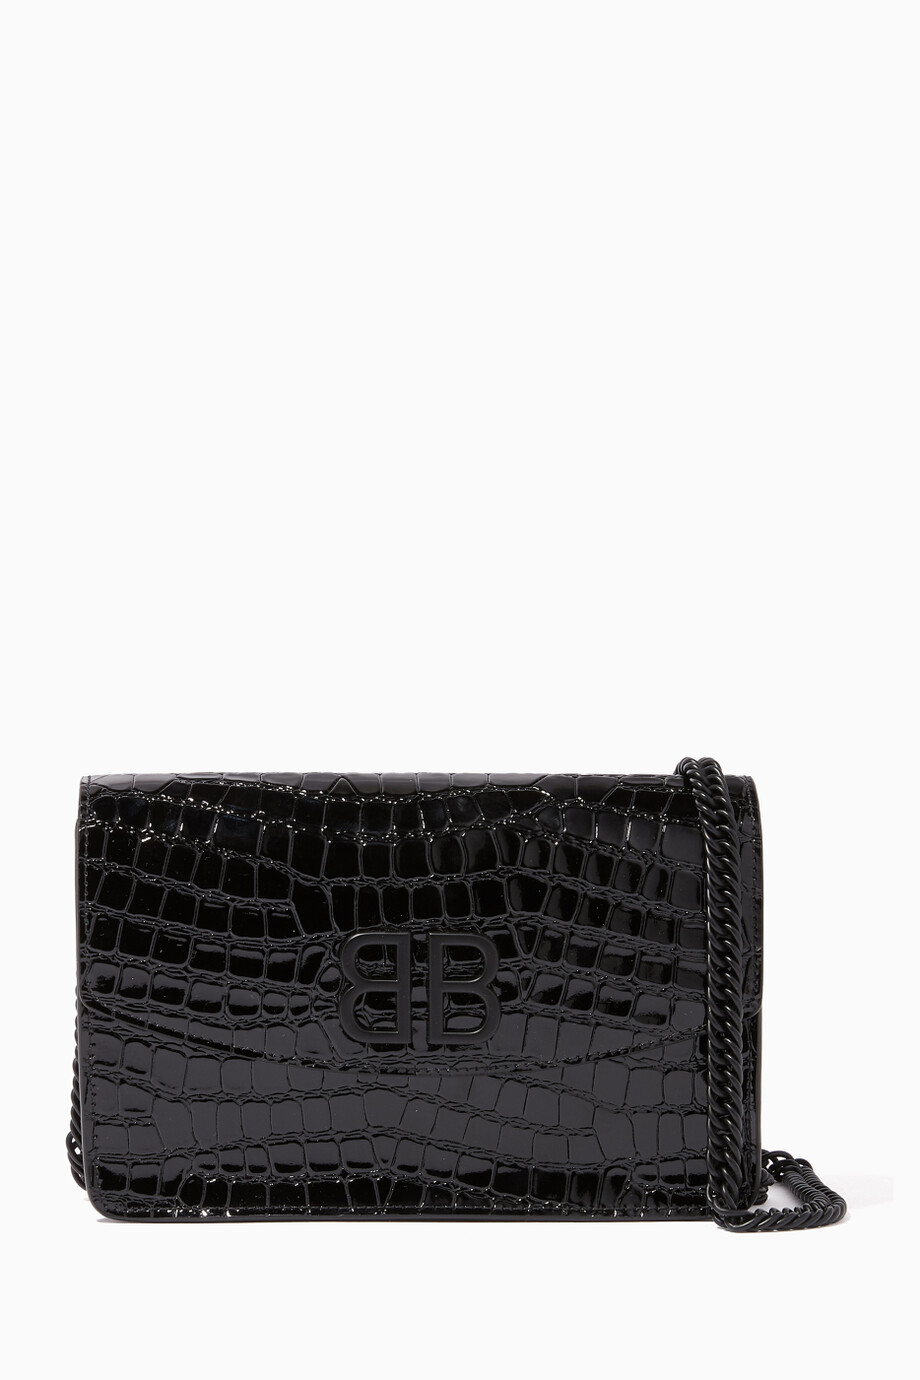 8cec7d49bce Shop Balenciaga Black BB Crocodile-Embossed Chain Wallet for ...